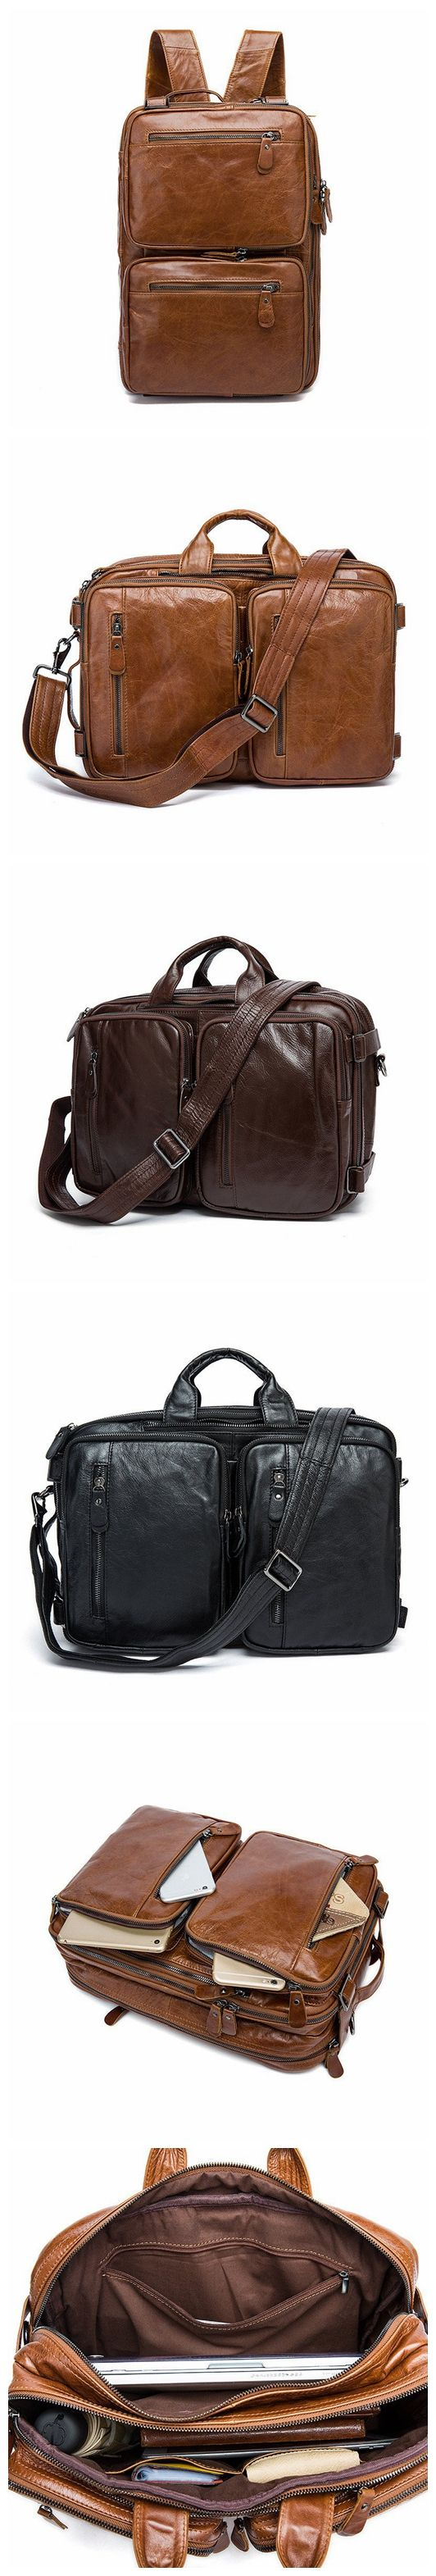 Top Grain Backpack, Leather Messenger Bag, Multi-Functional Shoulder Bag 432